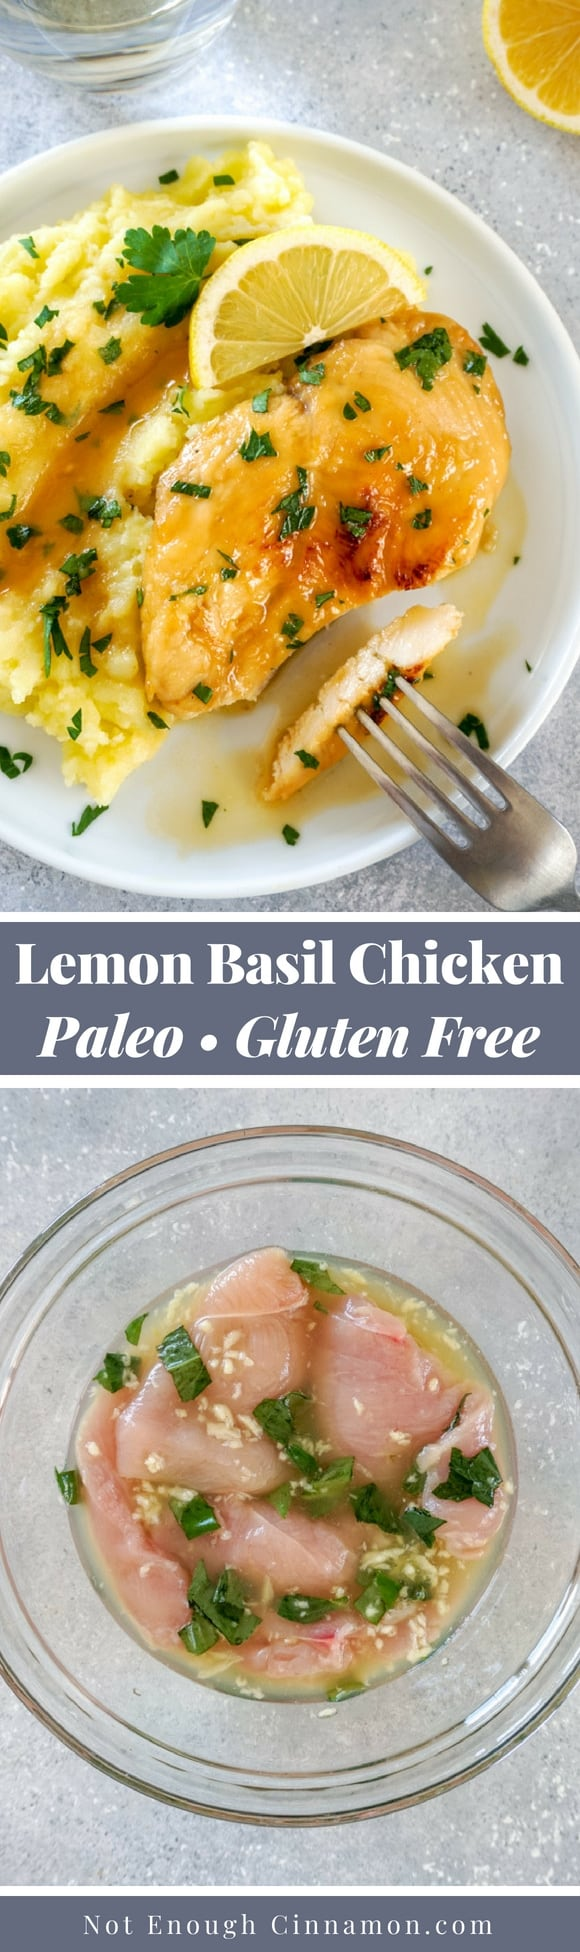 An easy recipe for super tasty lemon and basil chicken breasts. The perfect healthy dinner! Recipe on NotEnoughCinnamon.com #cleaneating #glutenfree #paleo